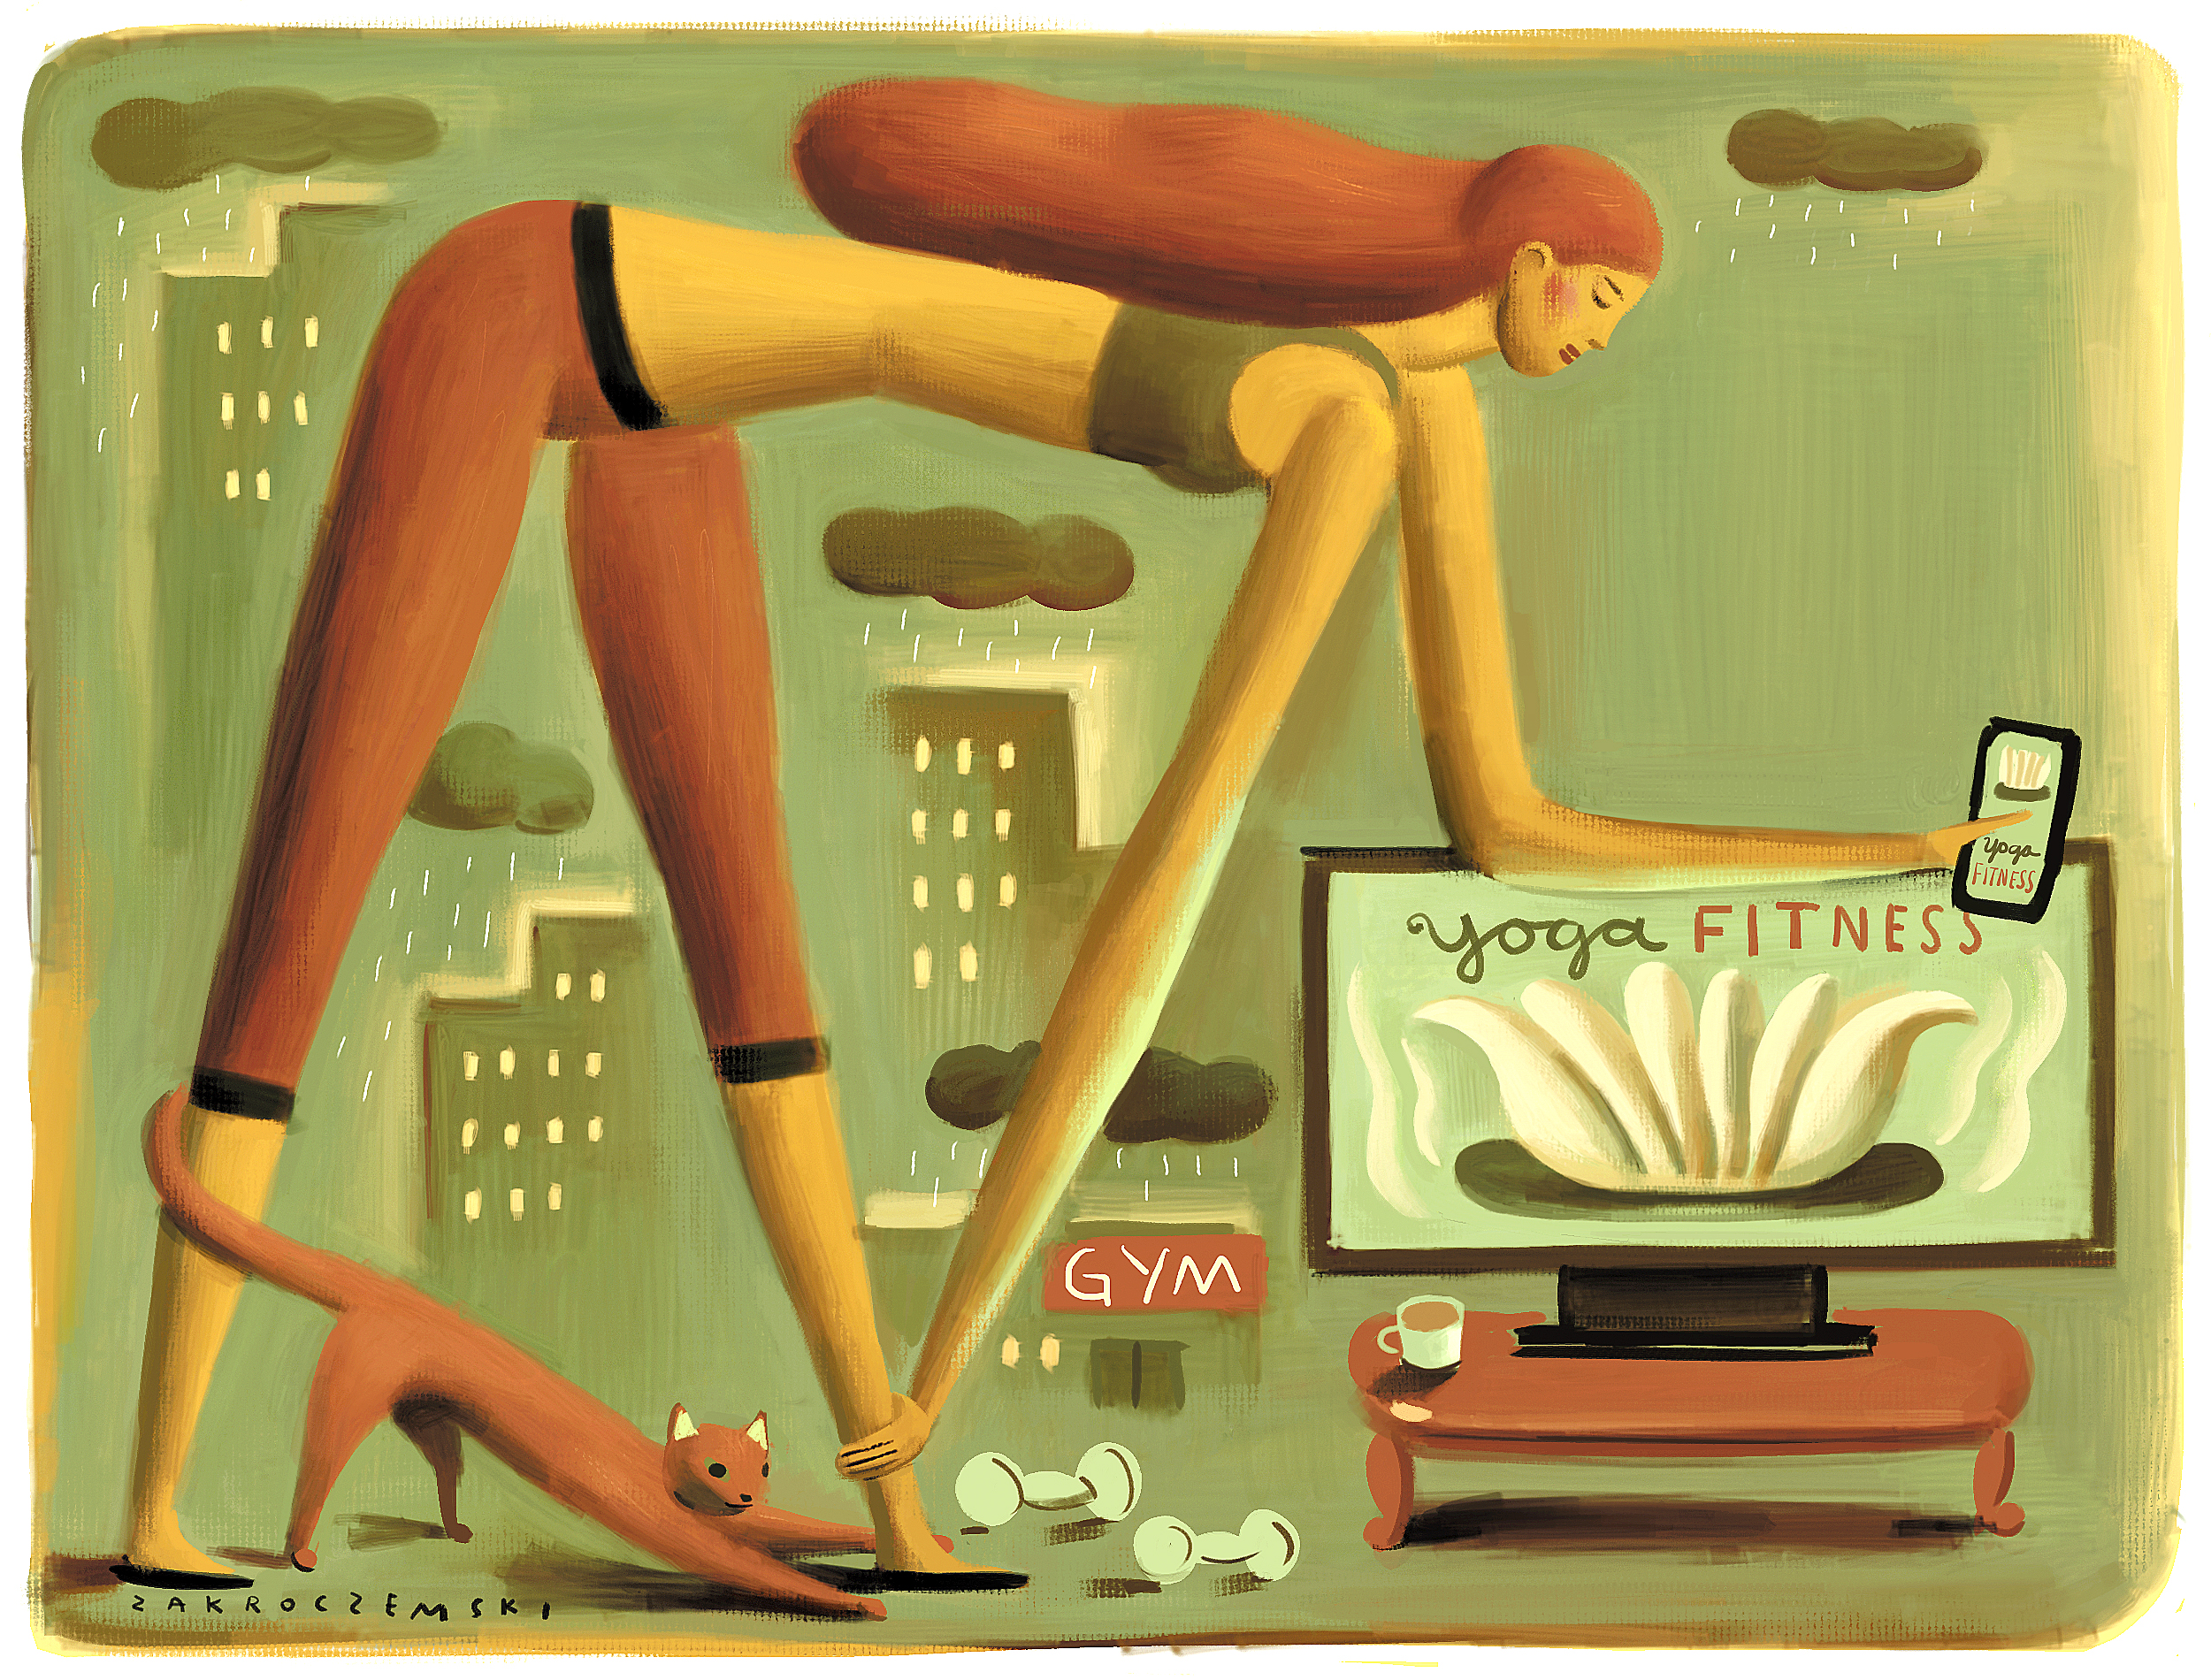 Online videos and smartphone apps can combine to give you a healthy workout. (Photo illustration by Dan Zakroczemski/Buffalo News)